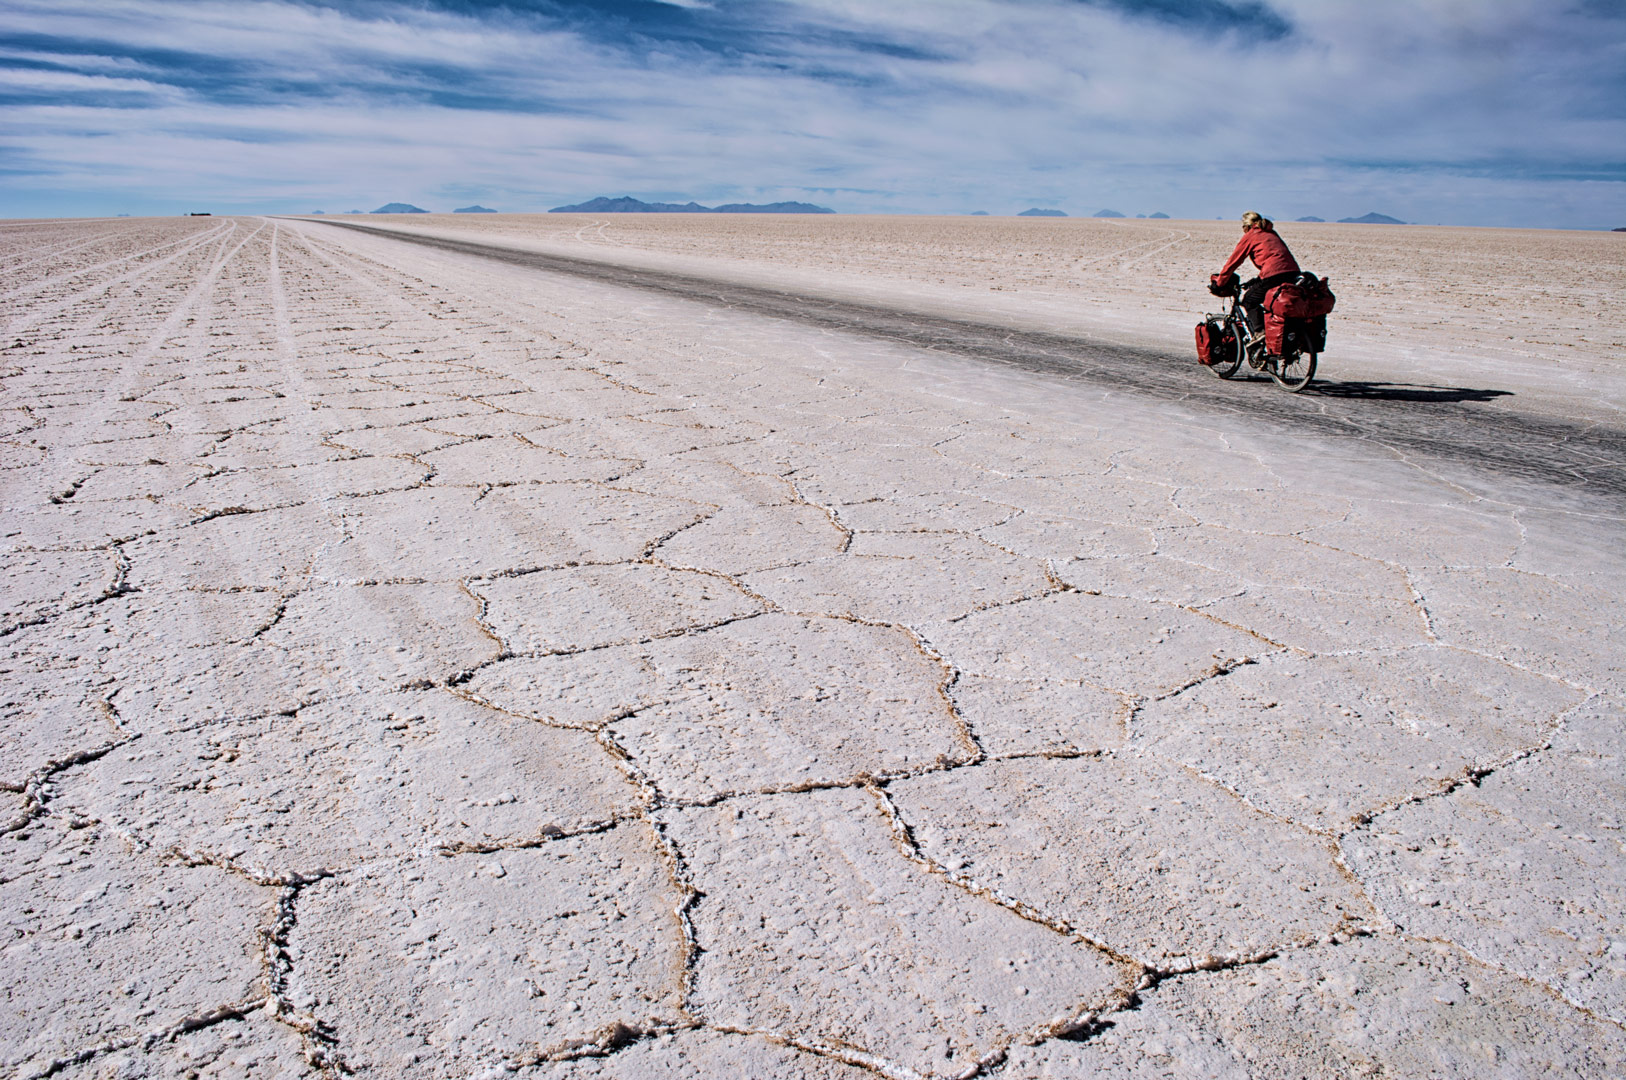 Cycling across the immense Salar de Uyuni.